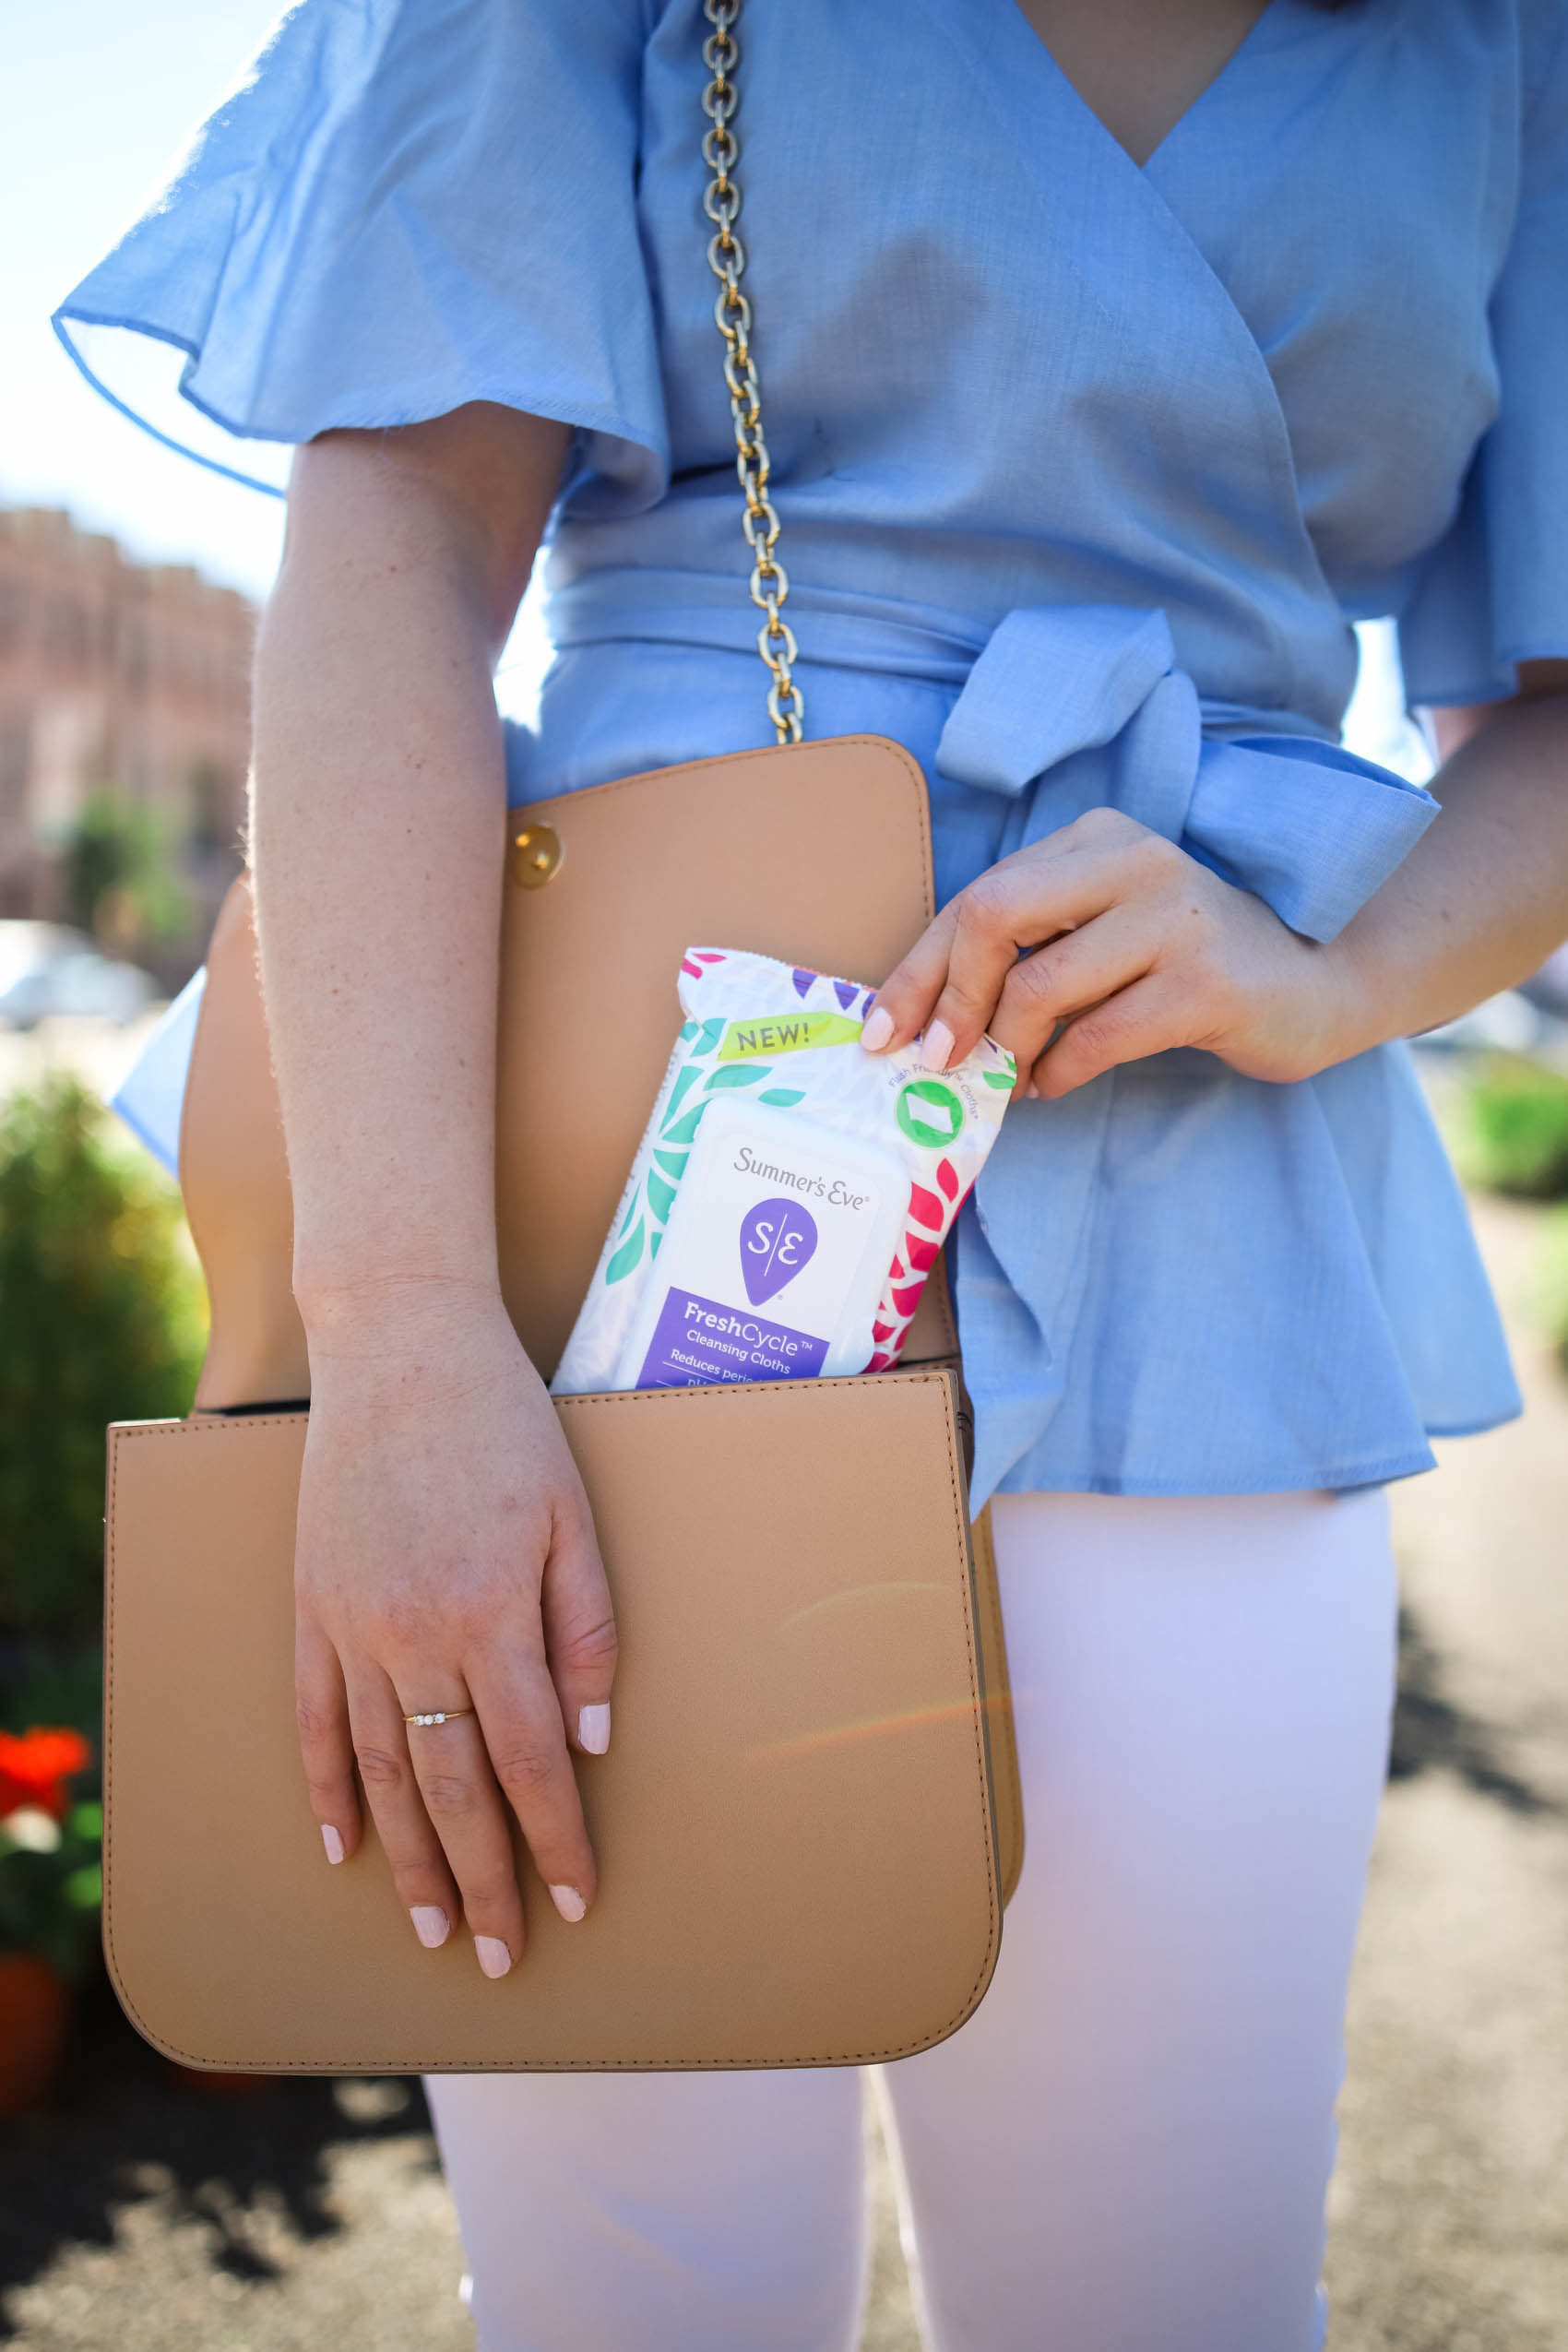 Summer's Eve Cleansing Cloths should be a must-have for any toiletries bag when traveling // via Glitter & Spice